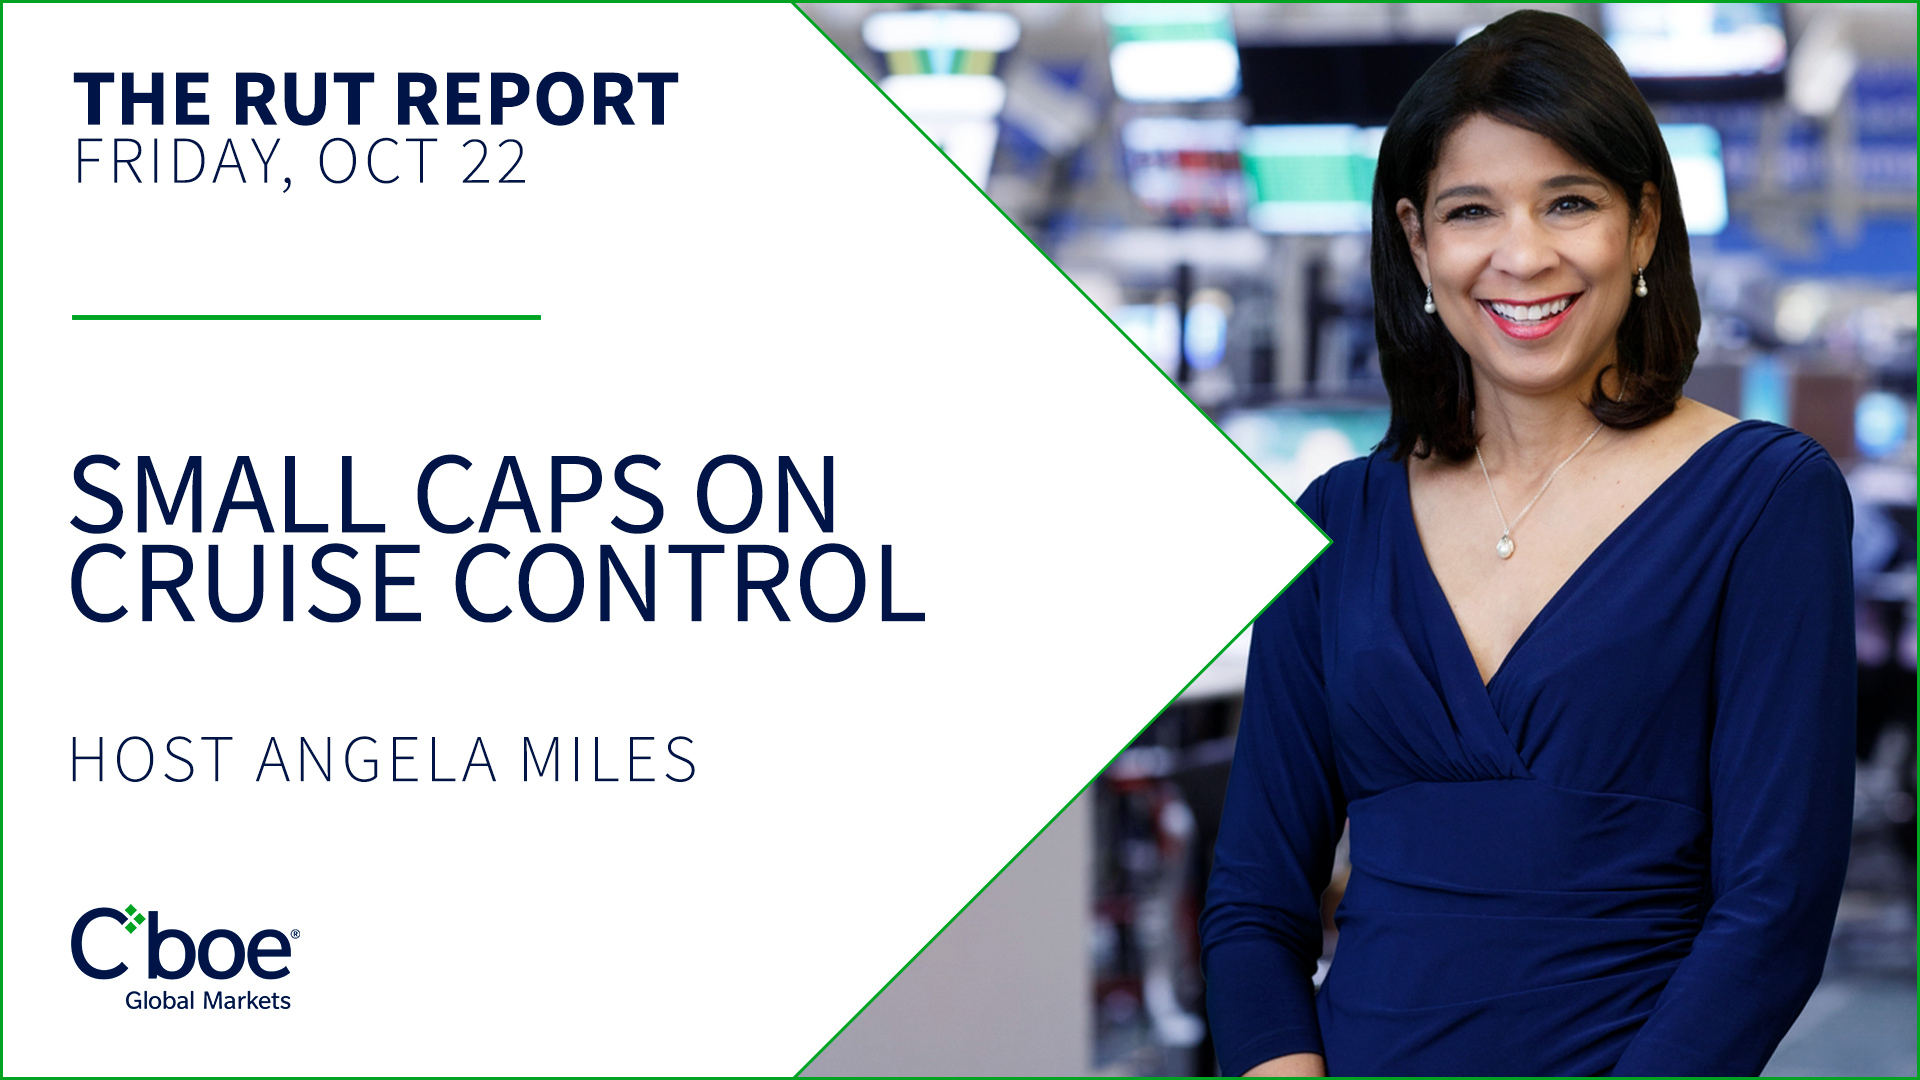 Small Caps on Cruise Control Thumbnail